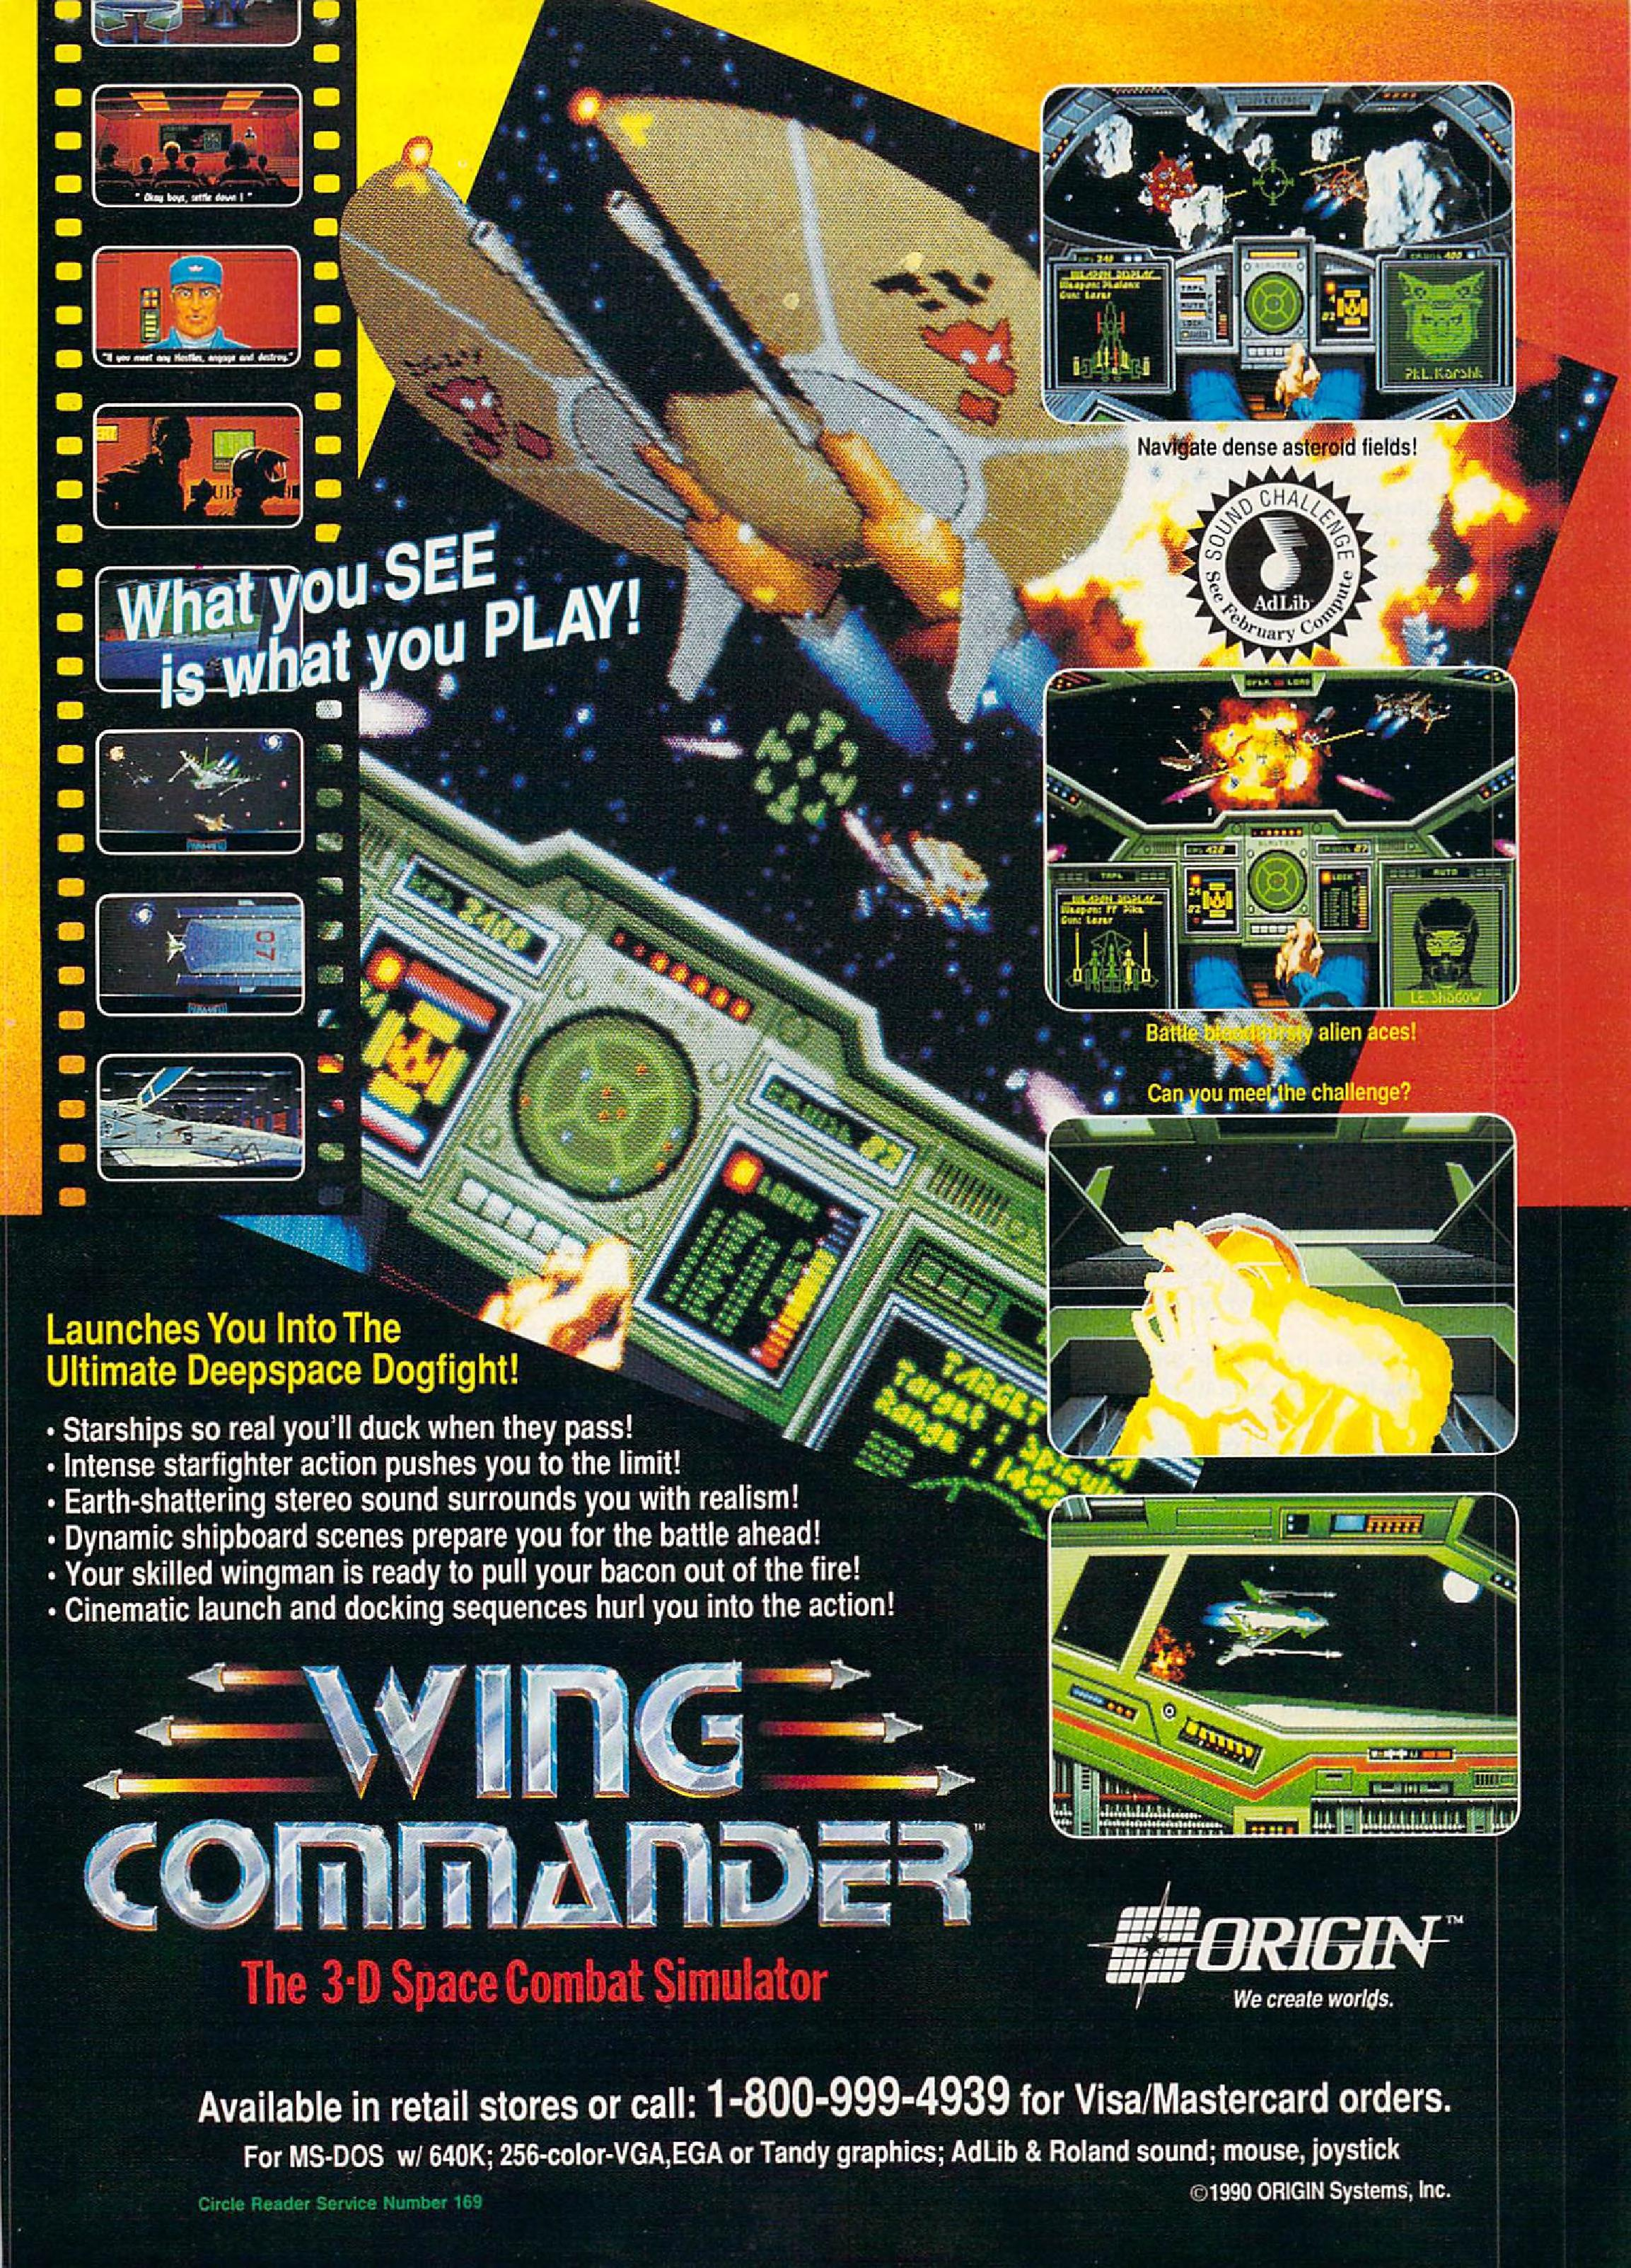 Wing commander does compute march 5 2017 wing for Wing commander